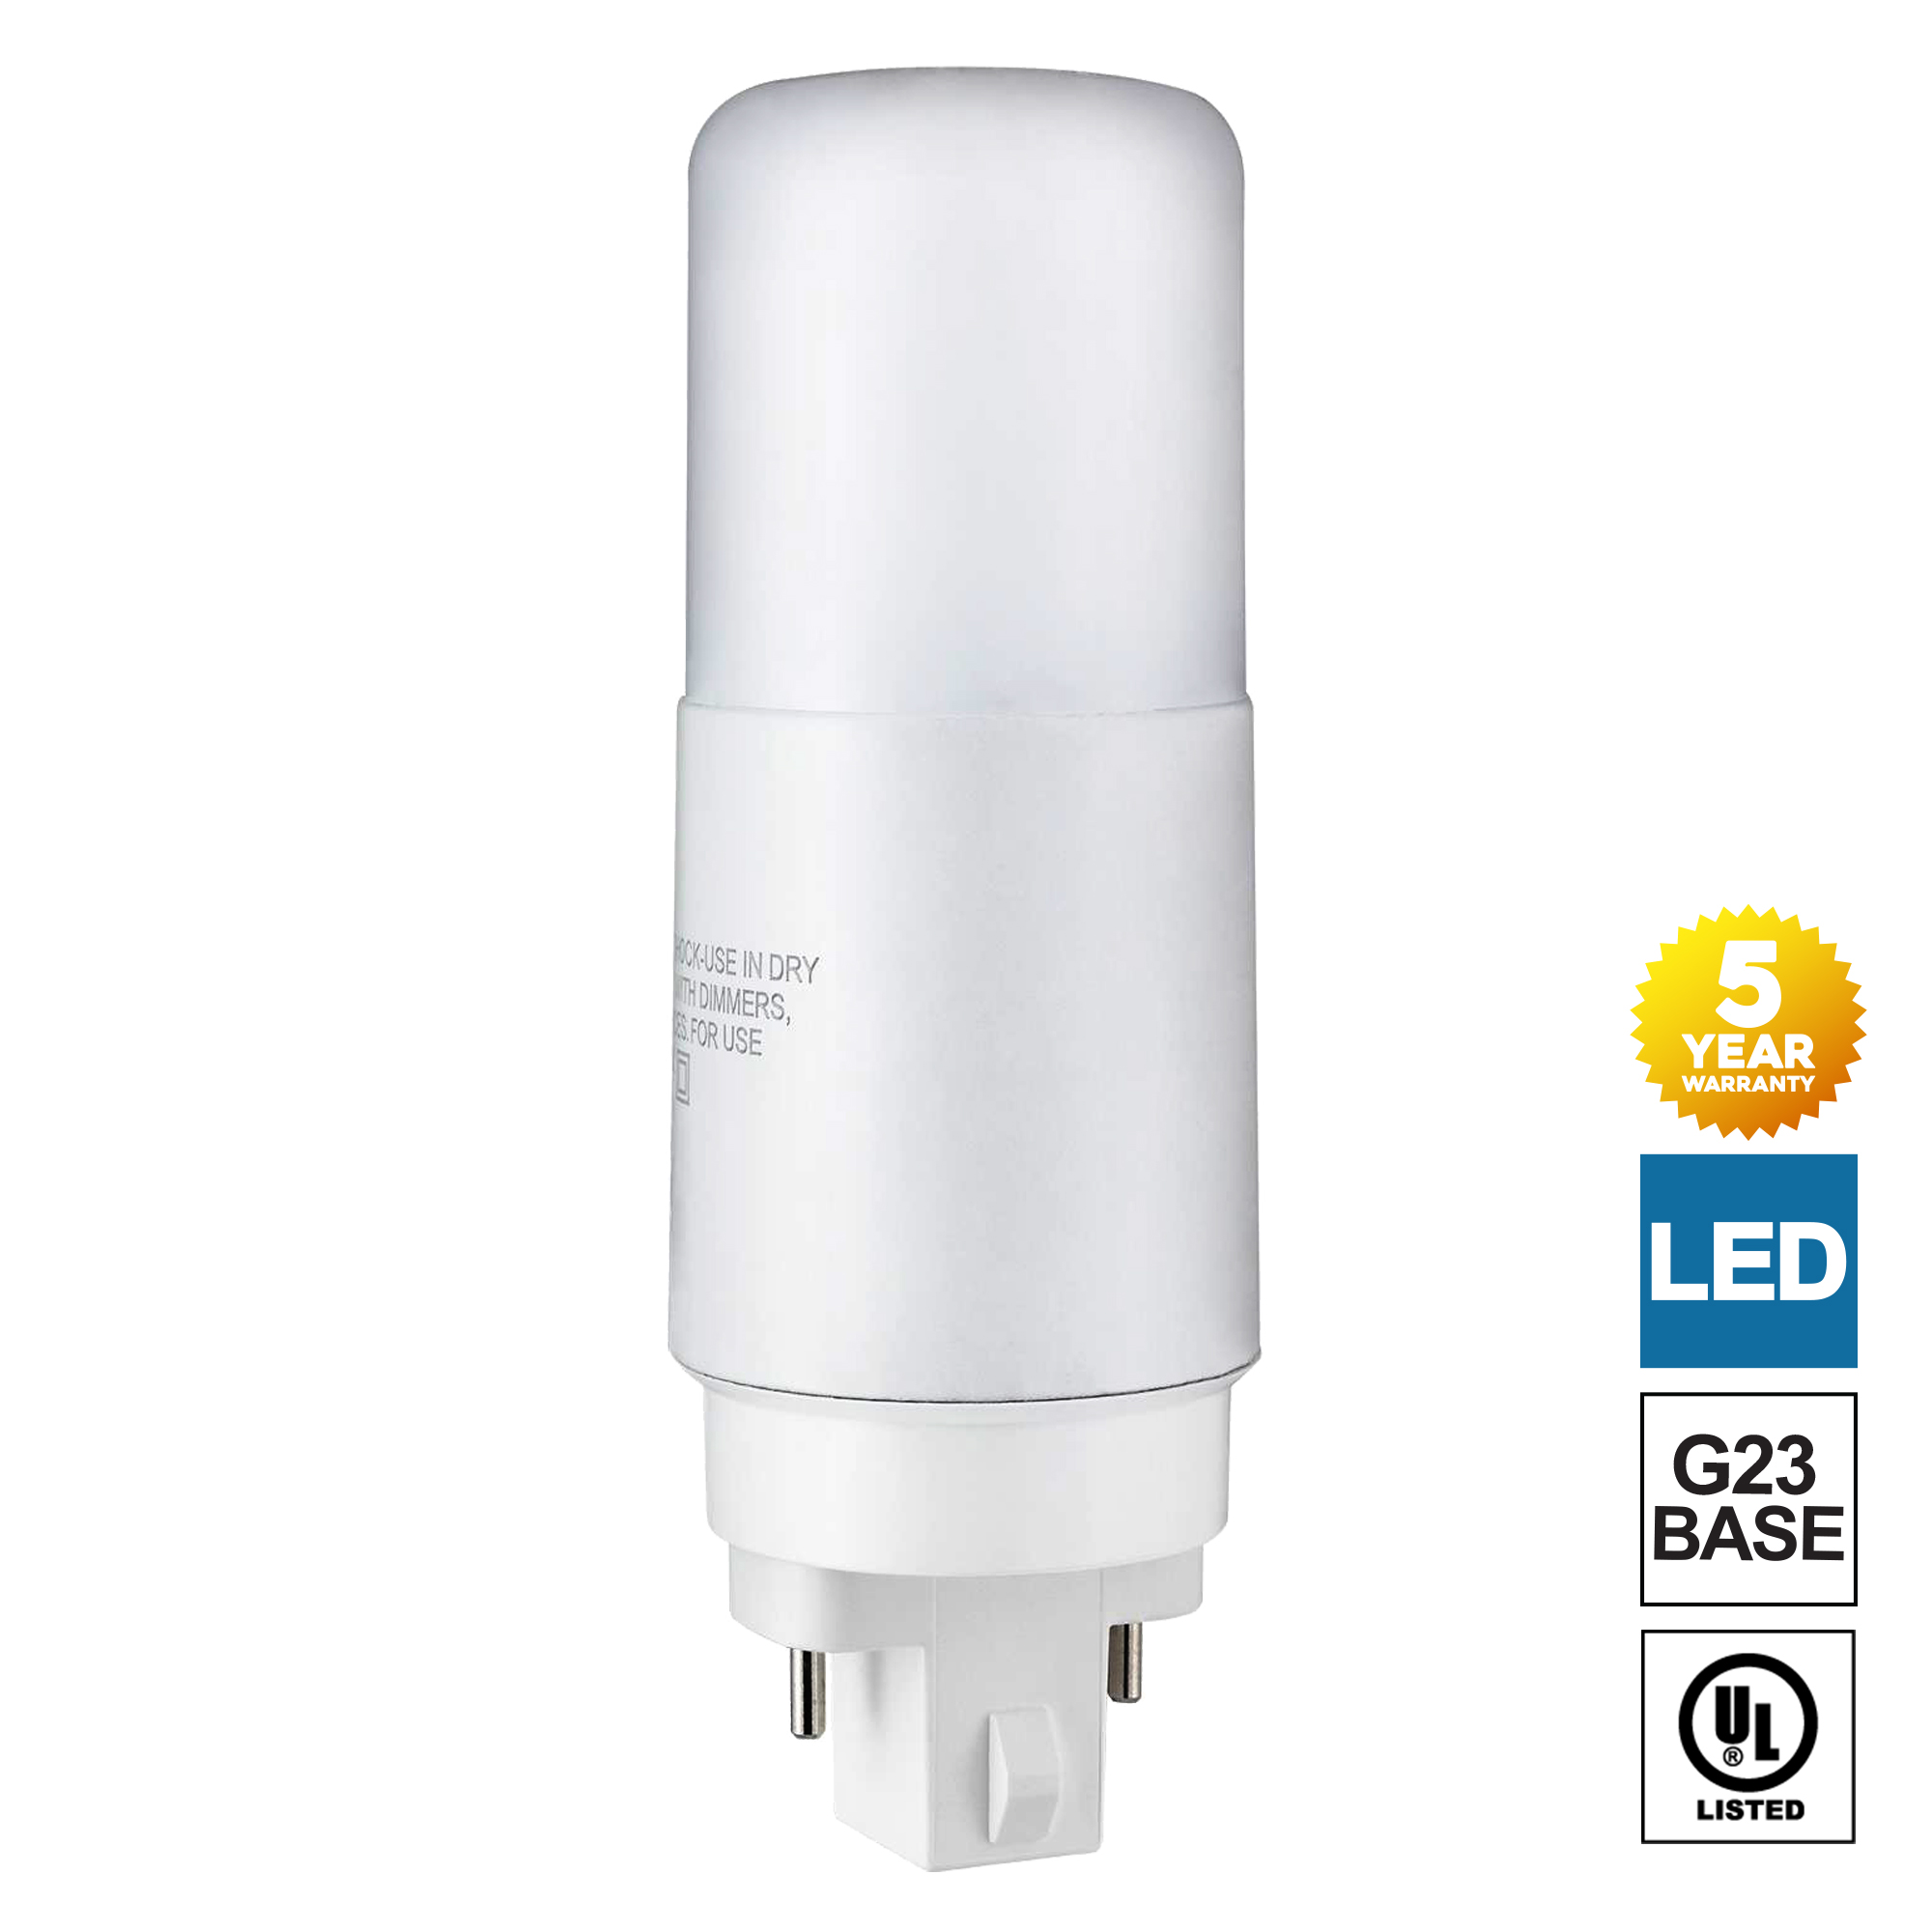 Led G23 Sunlite G23 Led Bulb 2 Pin Plv 7 Watt Cool White 4000k Full 360 Degree Illumination 13 Watt Cfl Replacement Ballast Bypass Required